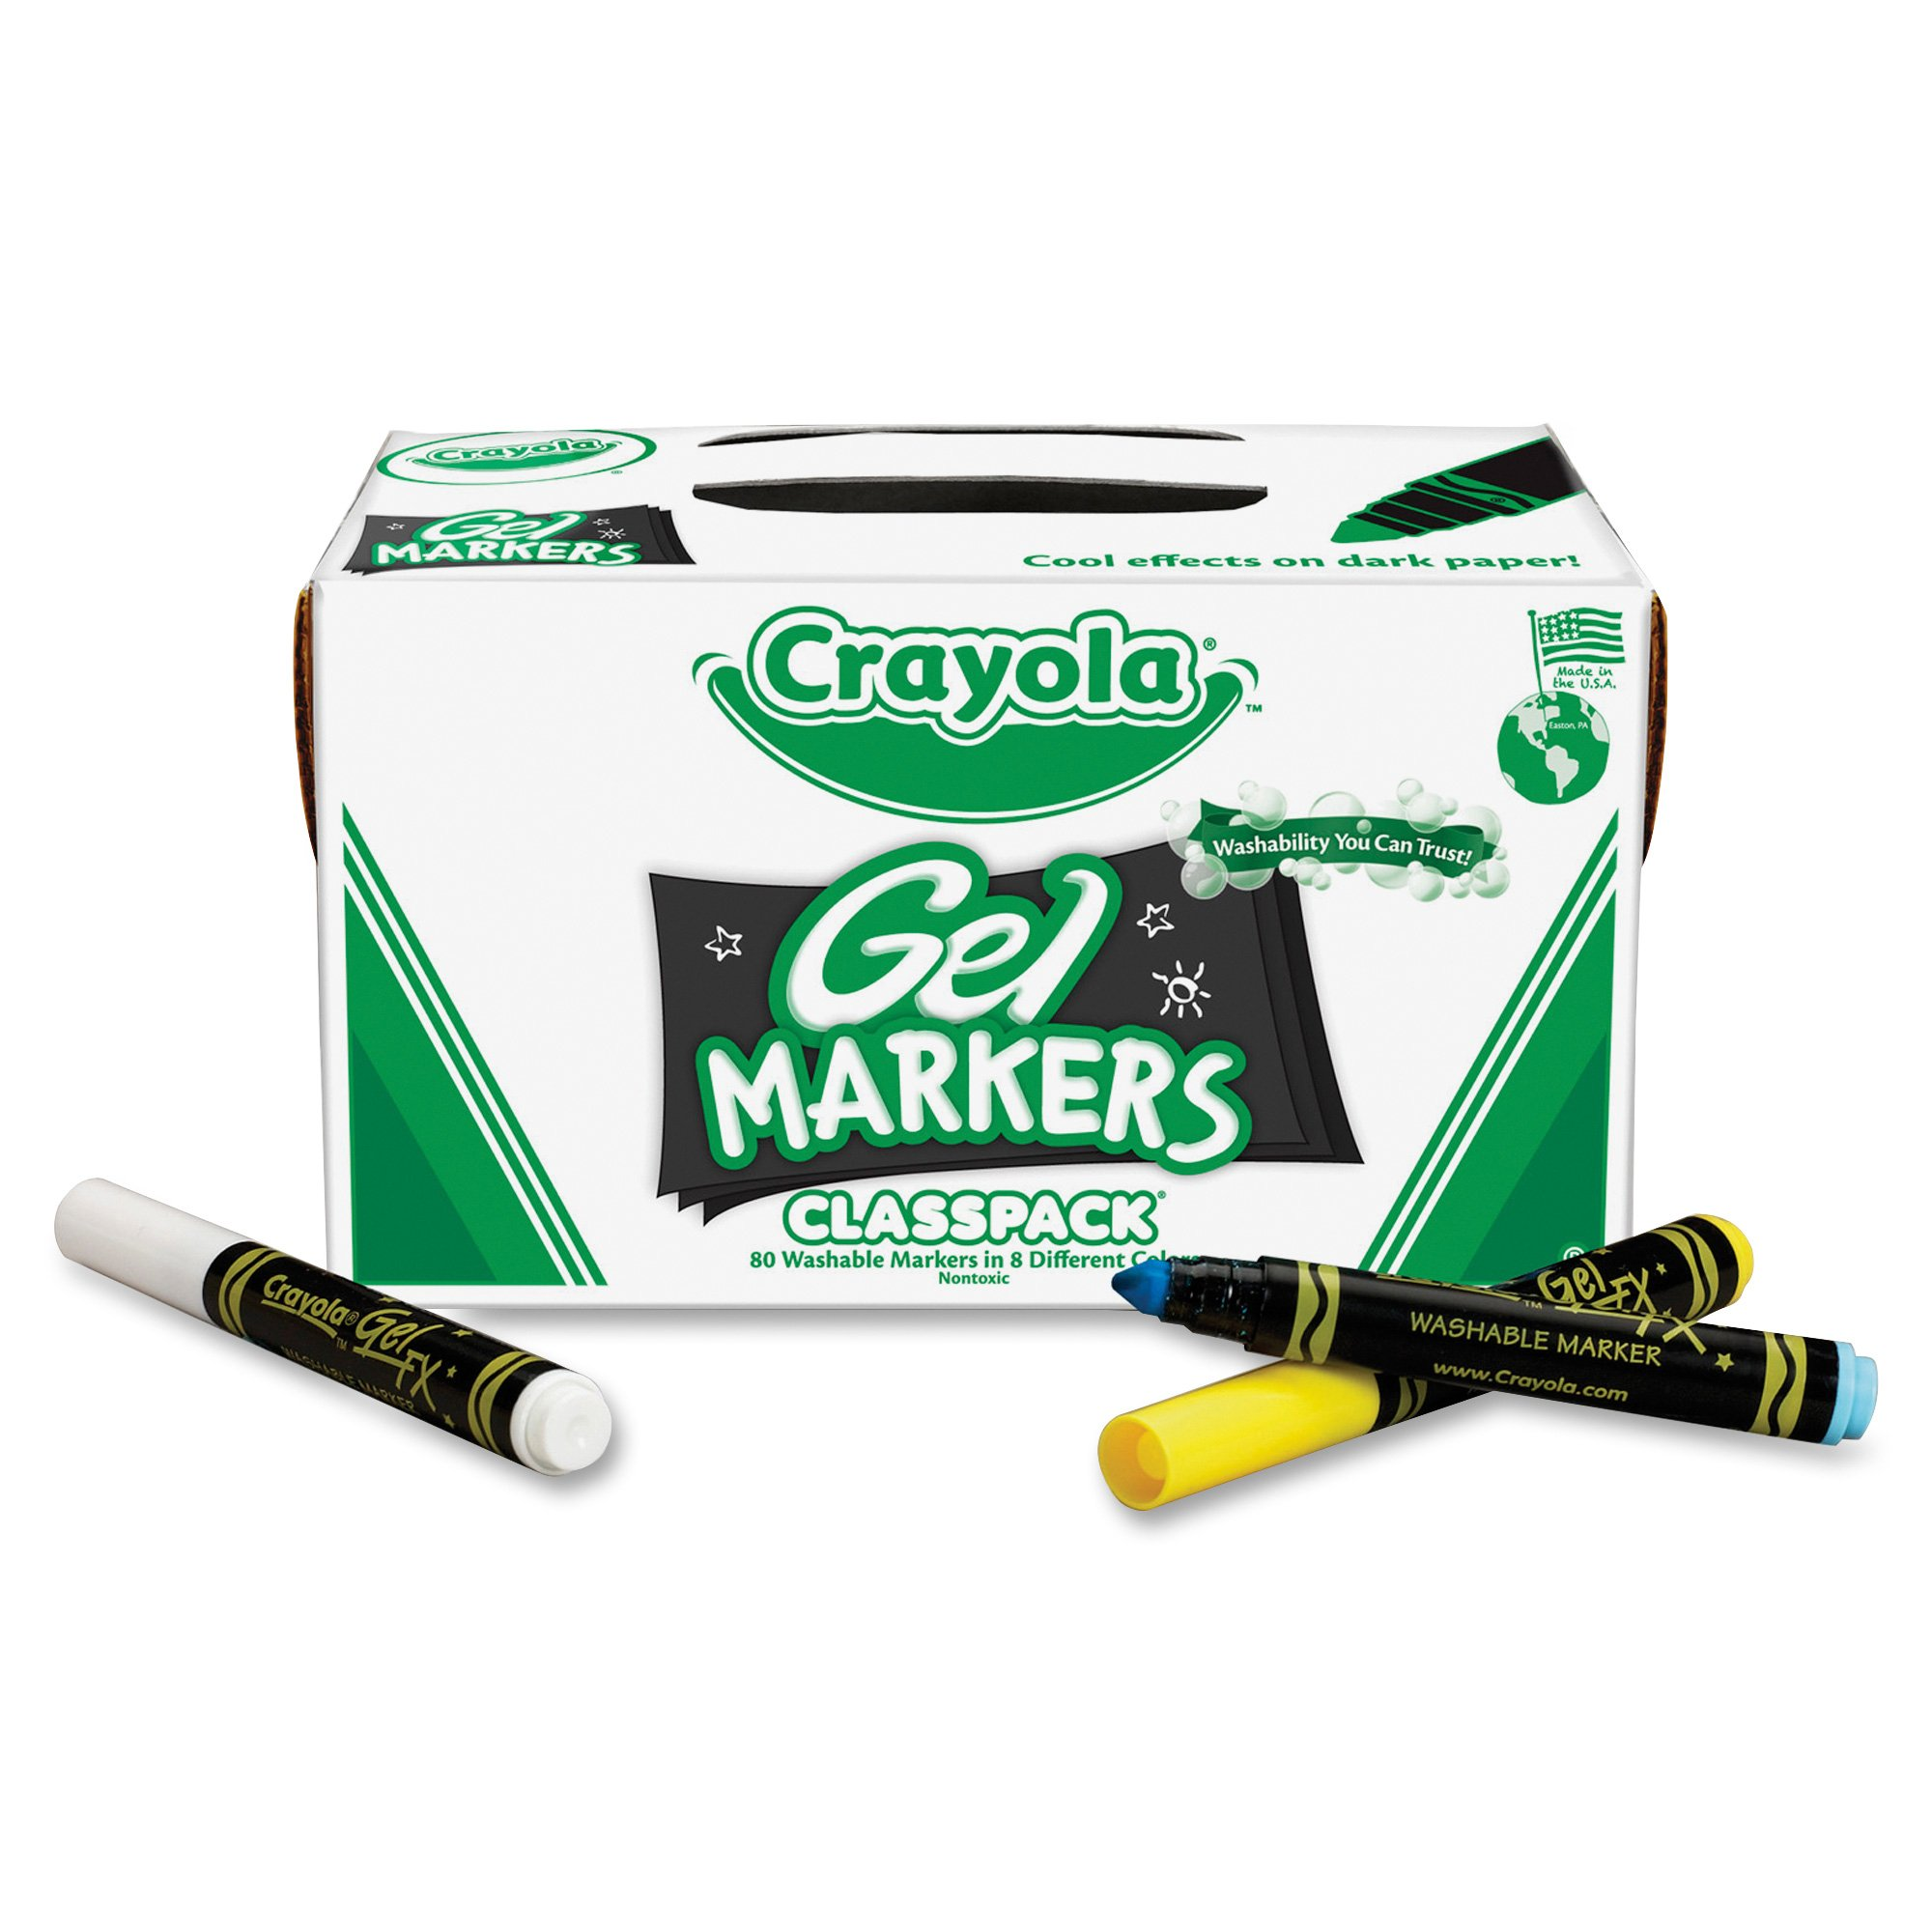 Crayola, Gel FX Washable Markers, 80 ct., 10 Each of 8 Different Colors, Great for Classroom, Educational, All-Purpose Art Tools by Crayola